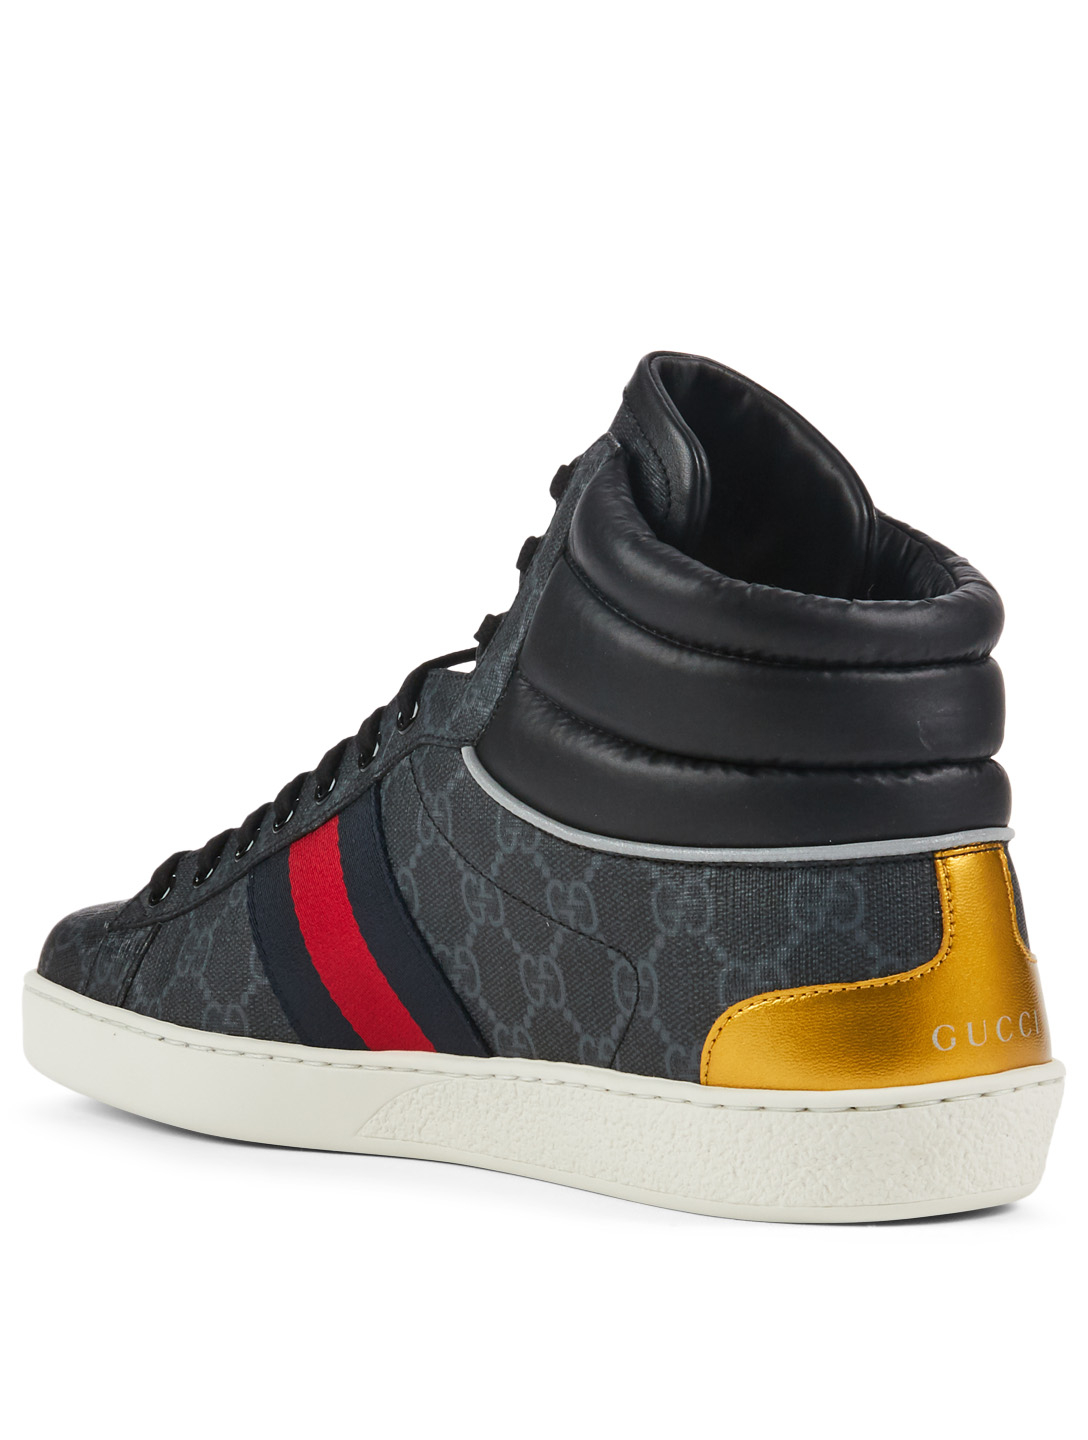 949c3a976d88f ... GUCCI Ace GG Supreme Canvas High-Top Sneakers Designers Black ...